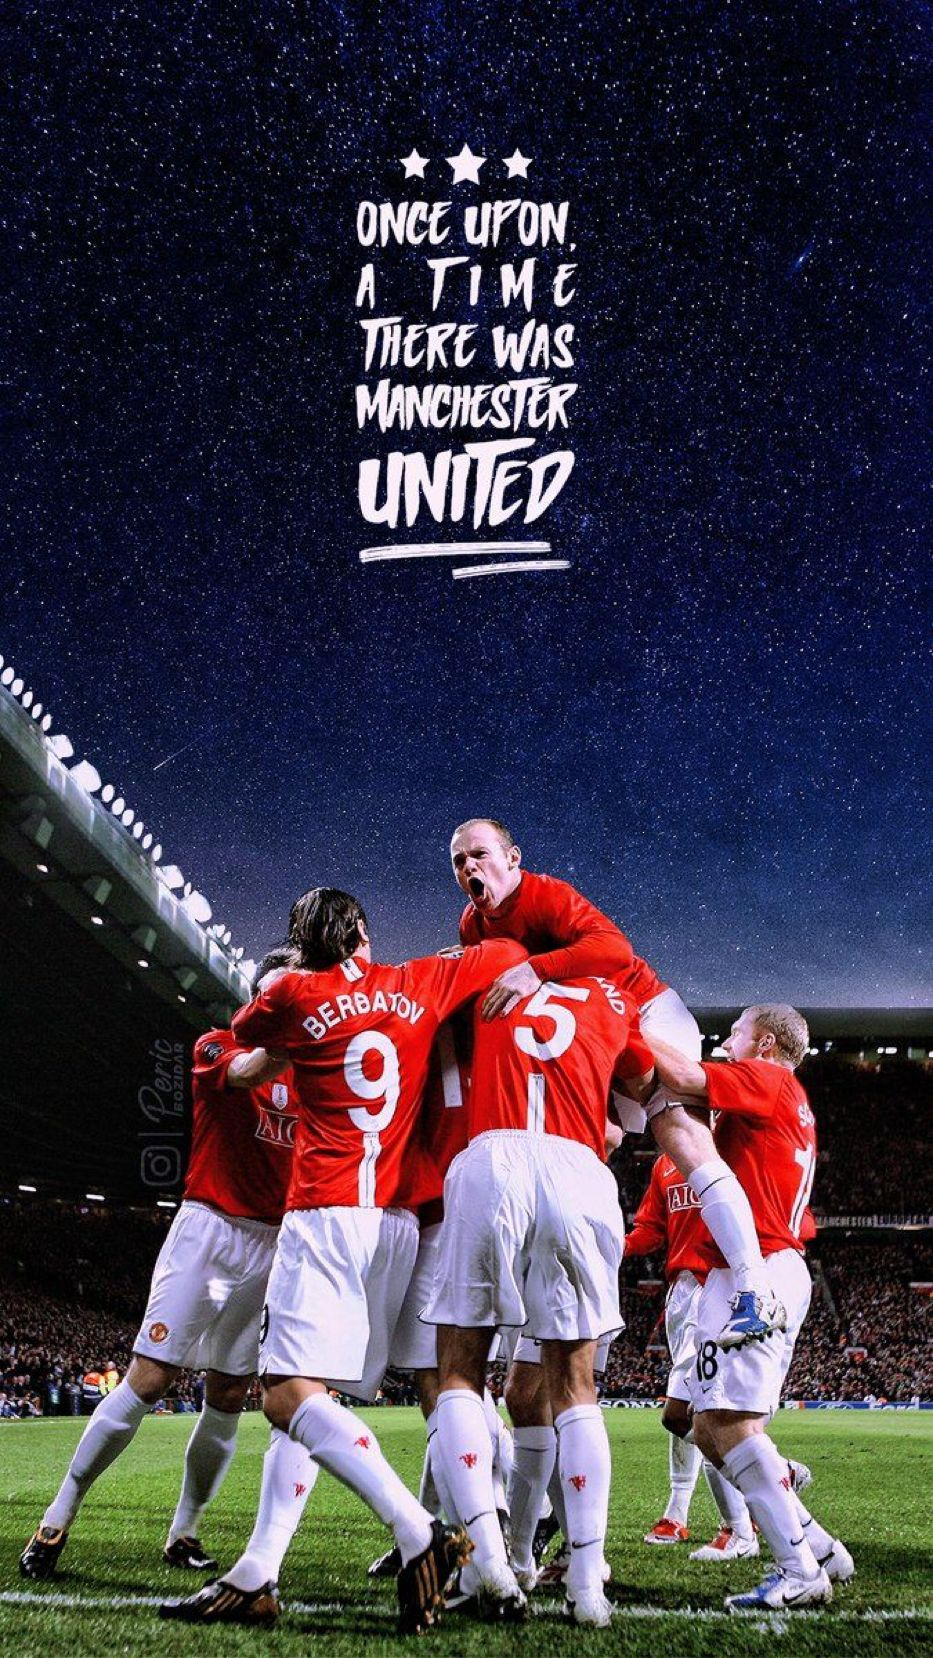 Never Write Off Manchester United Manchester United Wallpaper Manchester United Team Manchester United